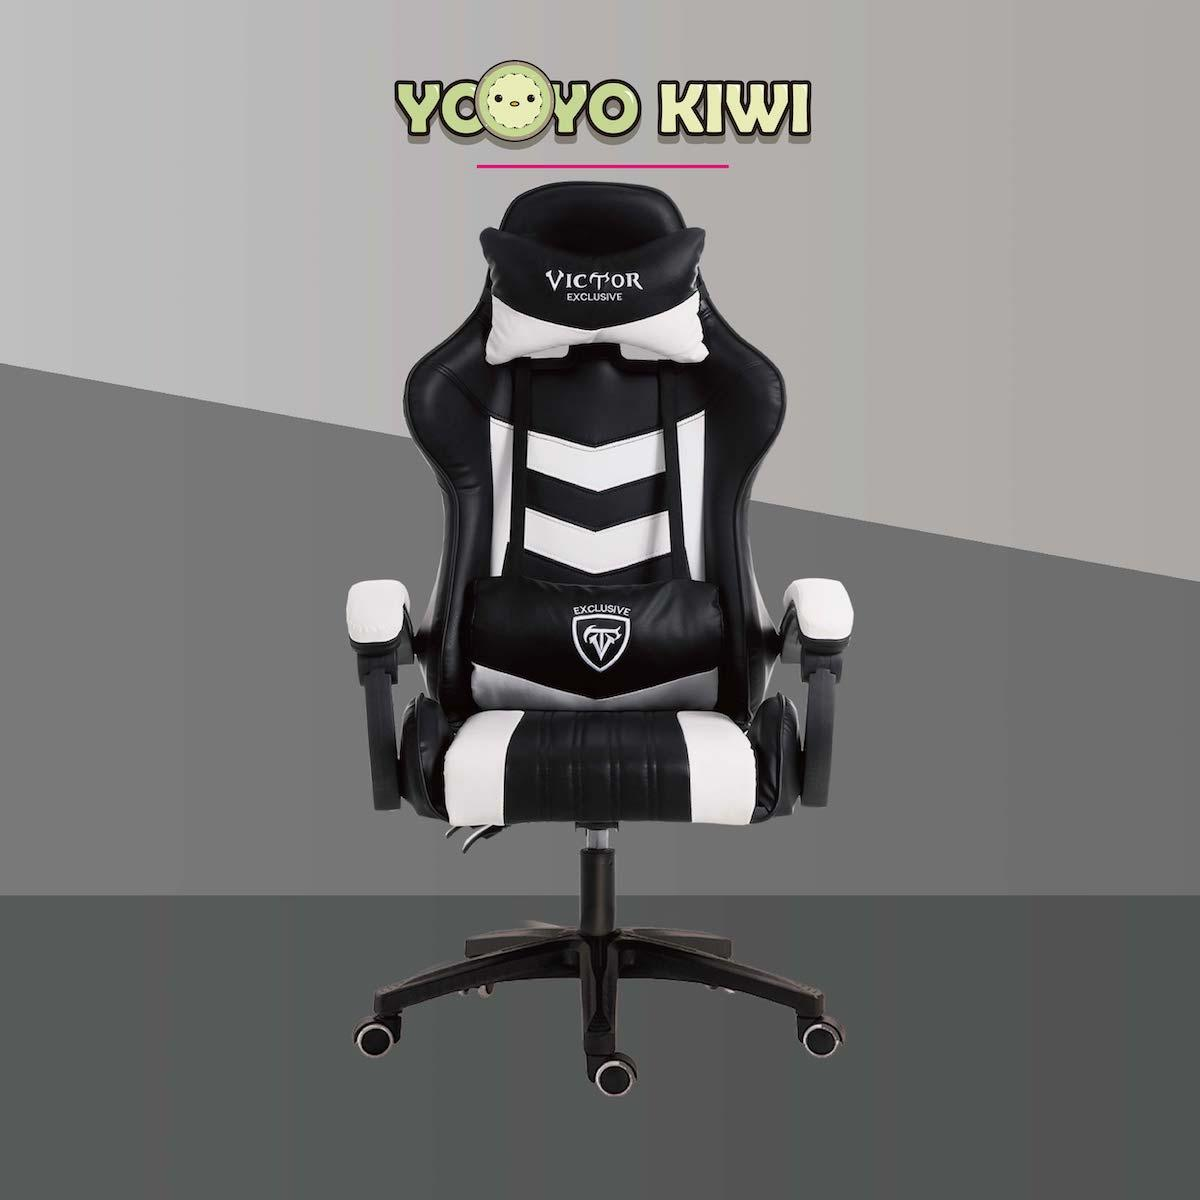 VICTOR 2019 Gaming Chairs Series! /Performance/Gaming Chair Office Chair High Back Computer Chair Racing Ergonomic Gaming